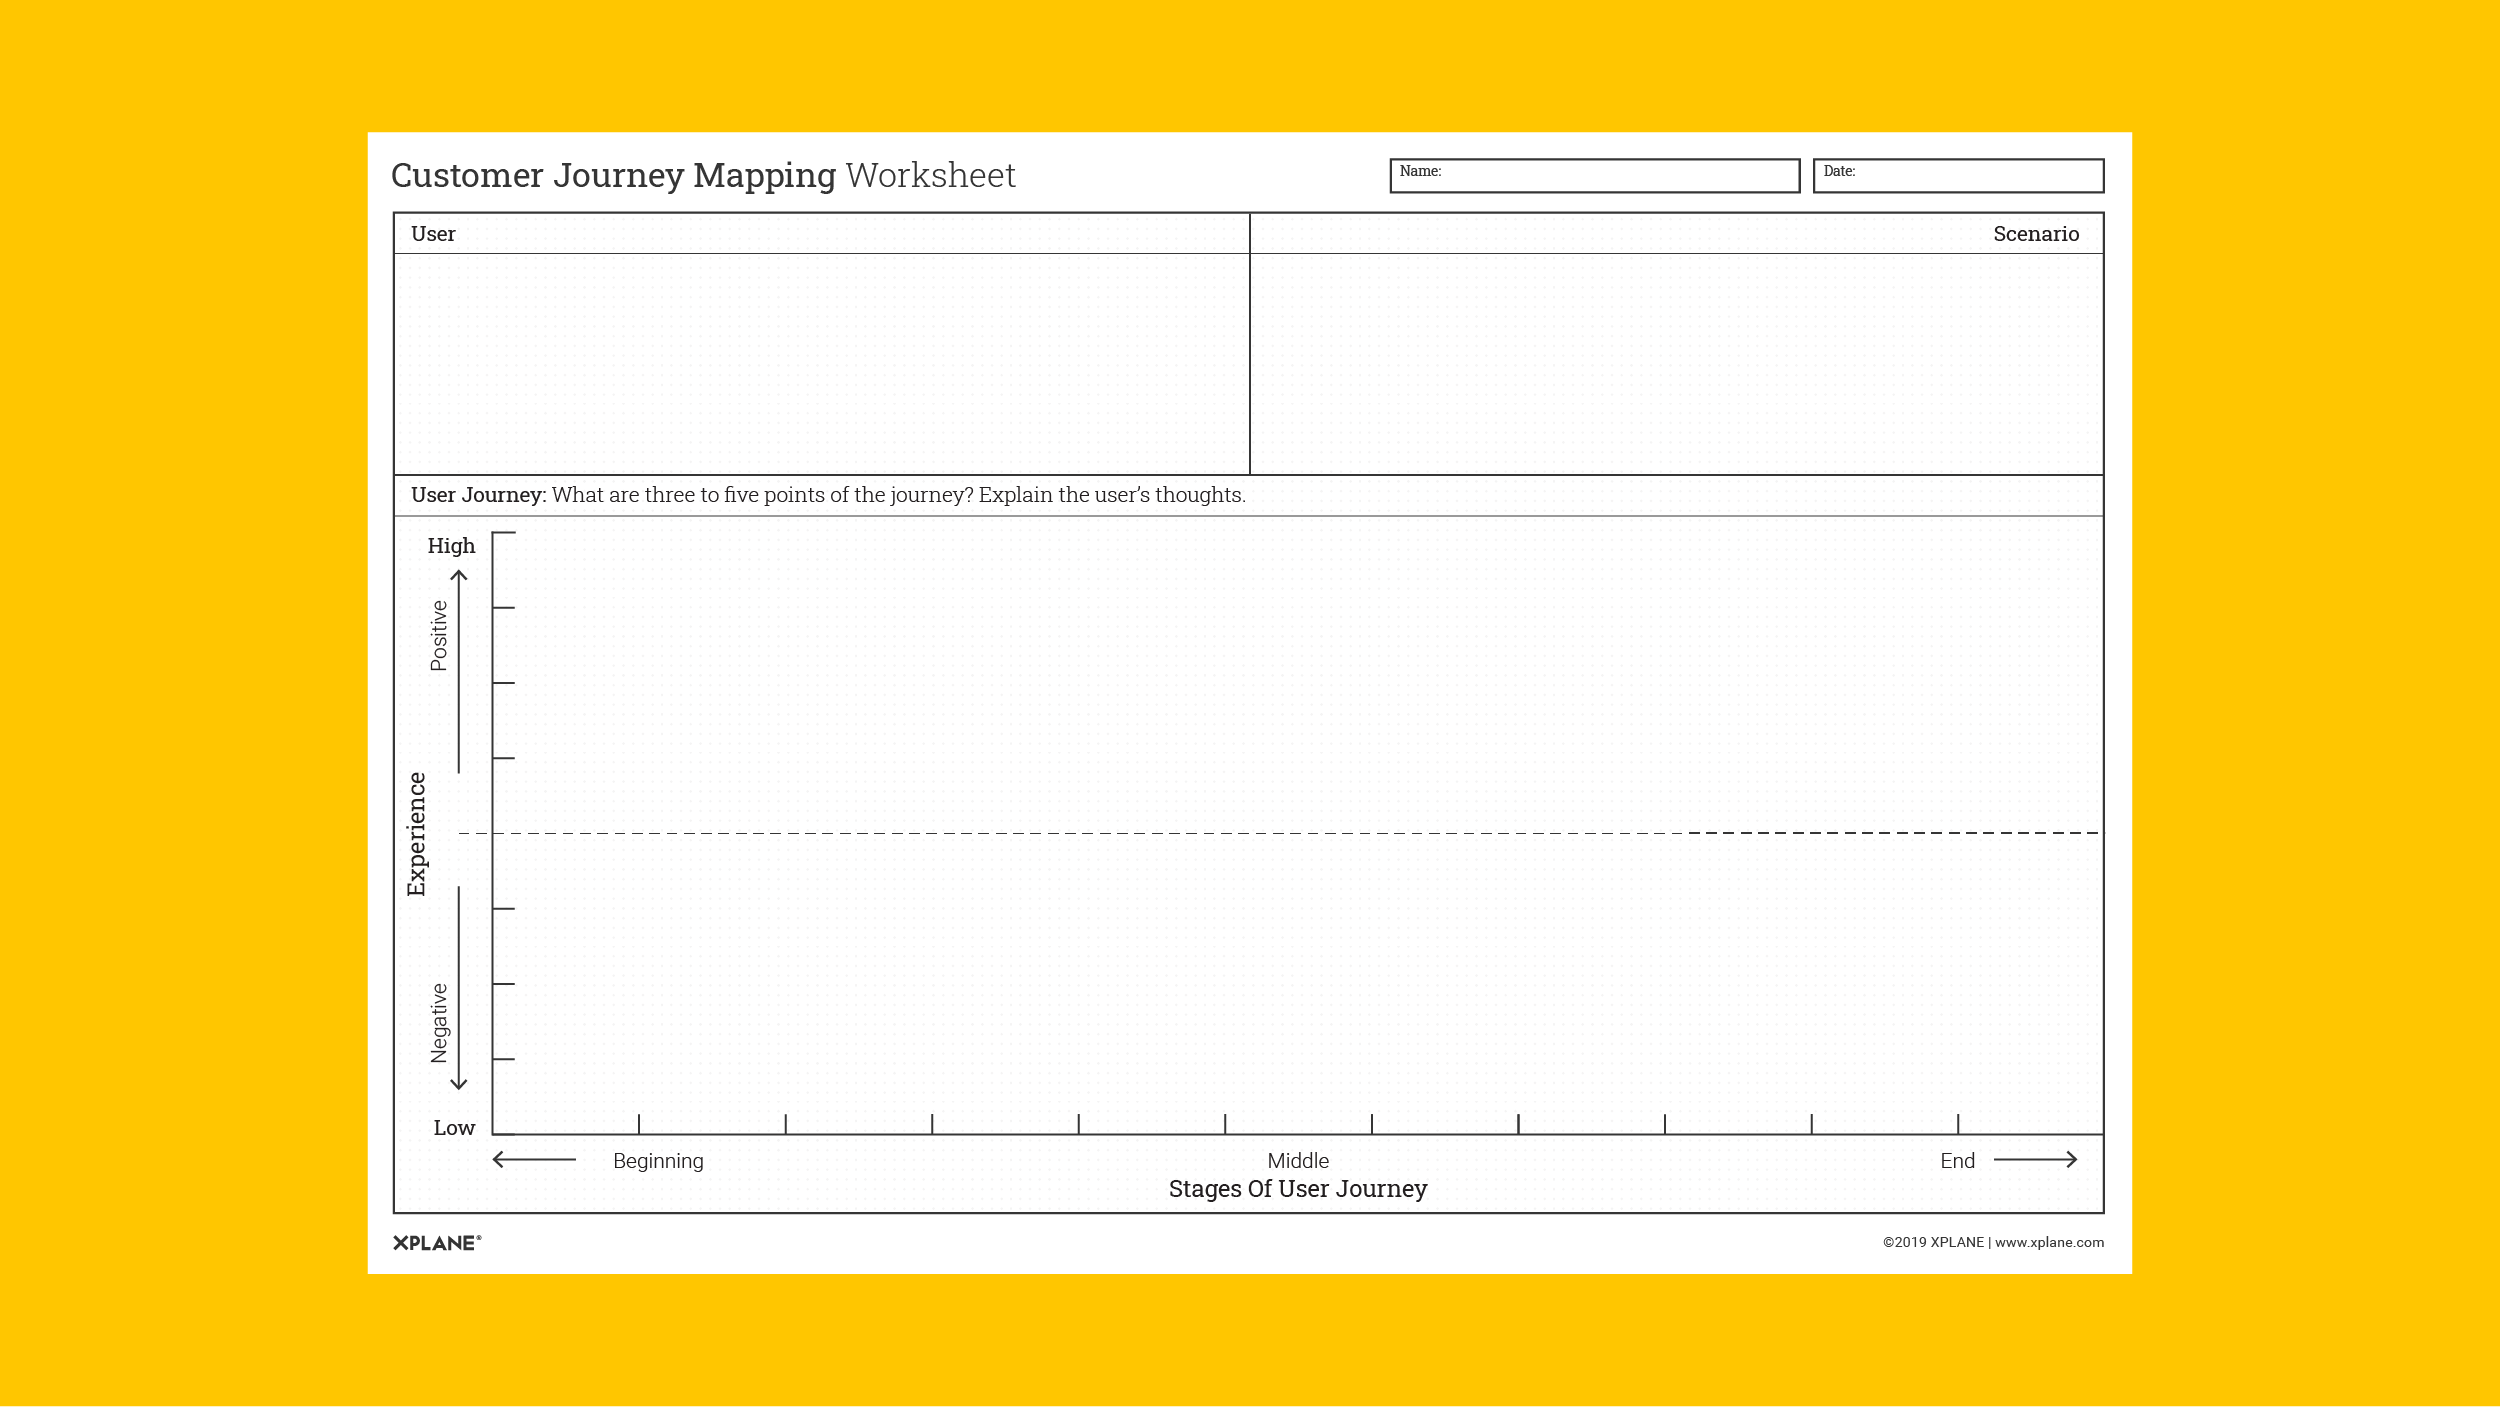 Customer Journey Mapping Worksheet